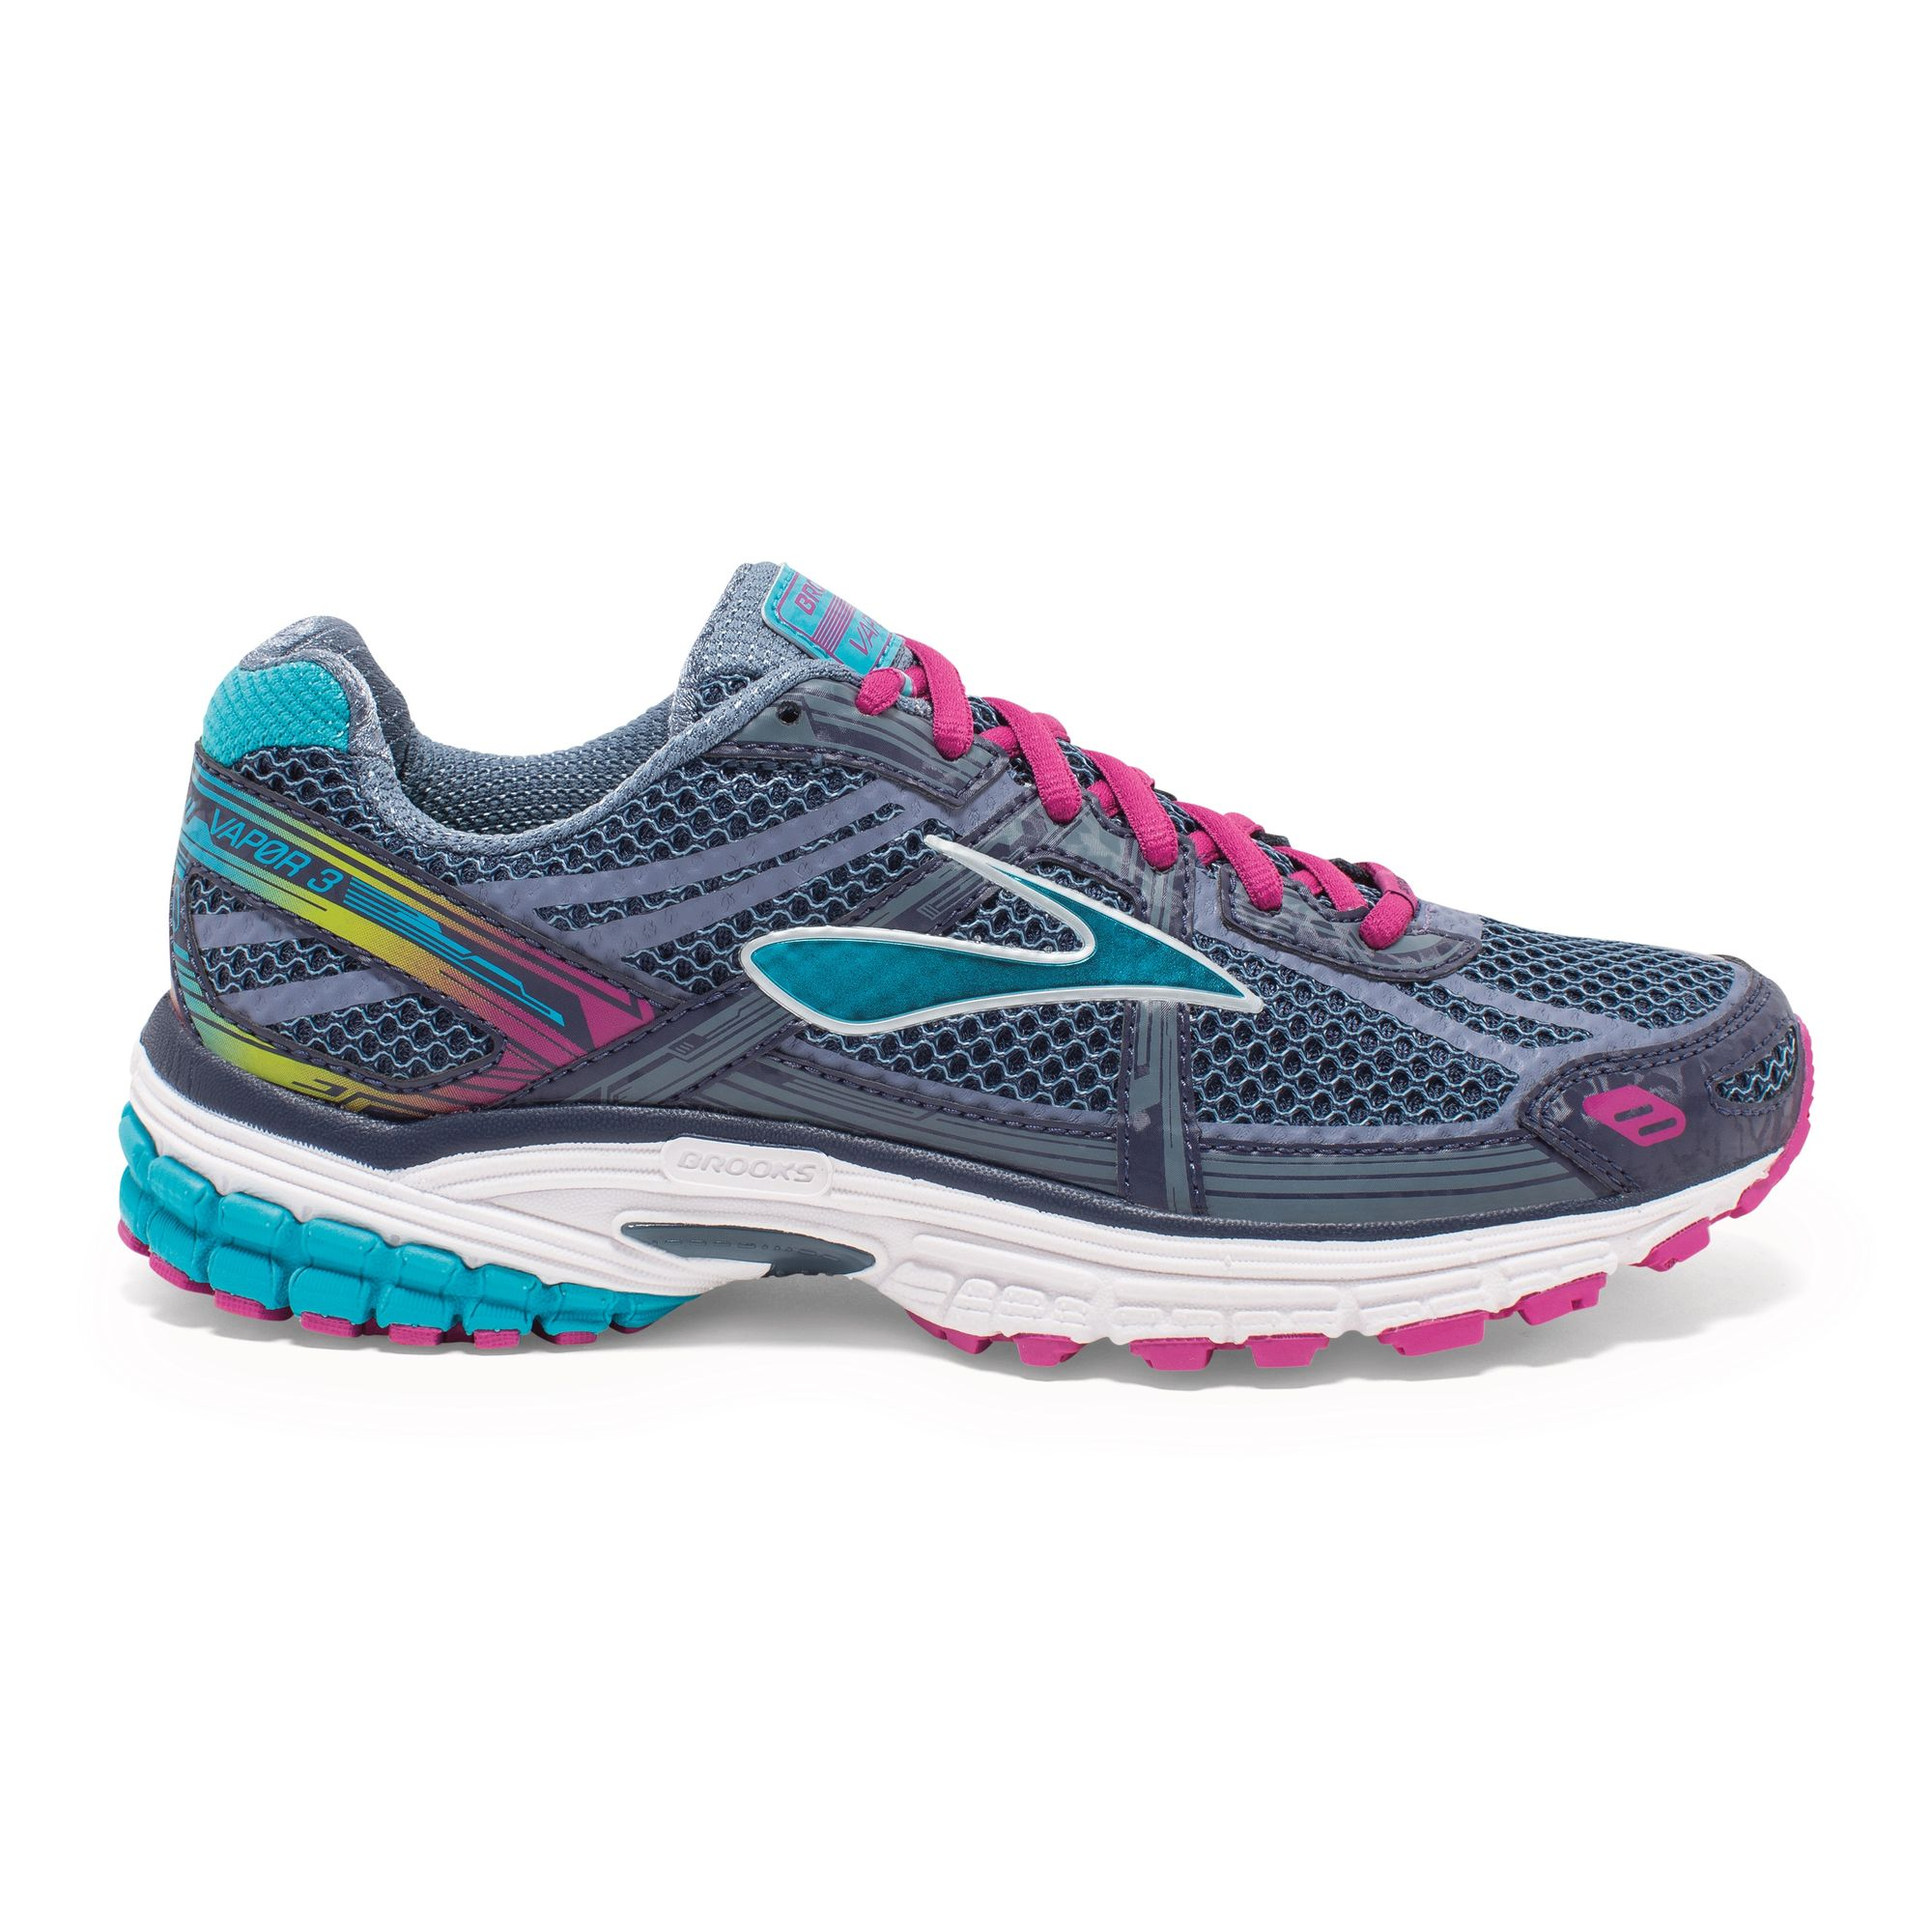 Brooks Lady Vapor 3 in Anthrazit, Blau Lila